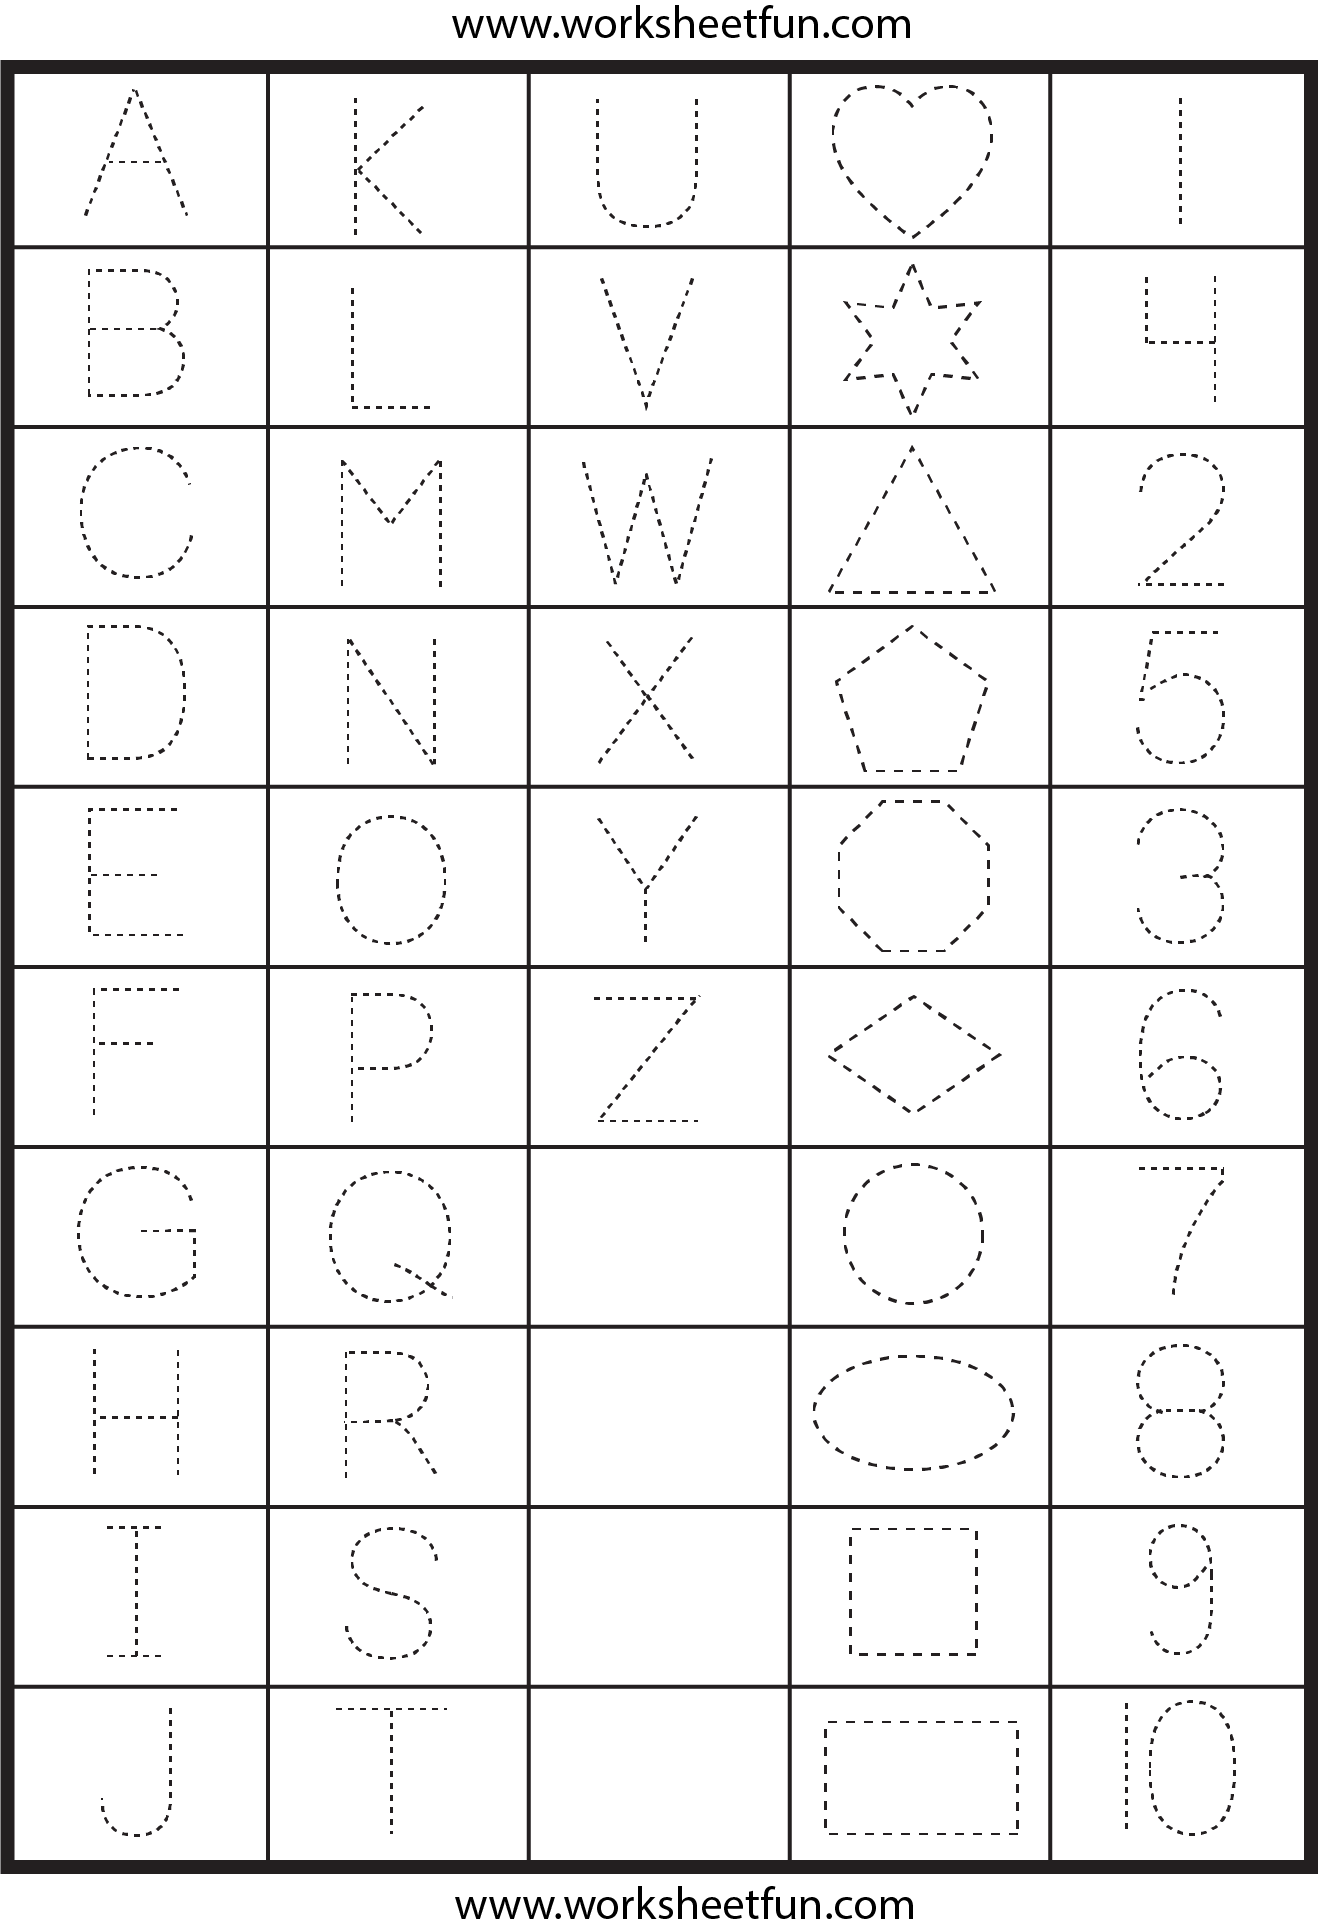 Free Life Skills Worksheets and Letters Numbers and Shapes Tracing Worksheets Free Printable